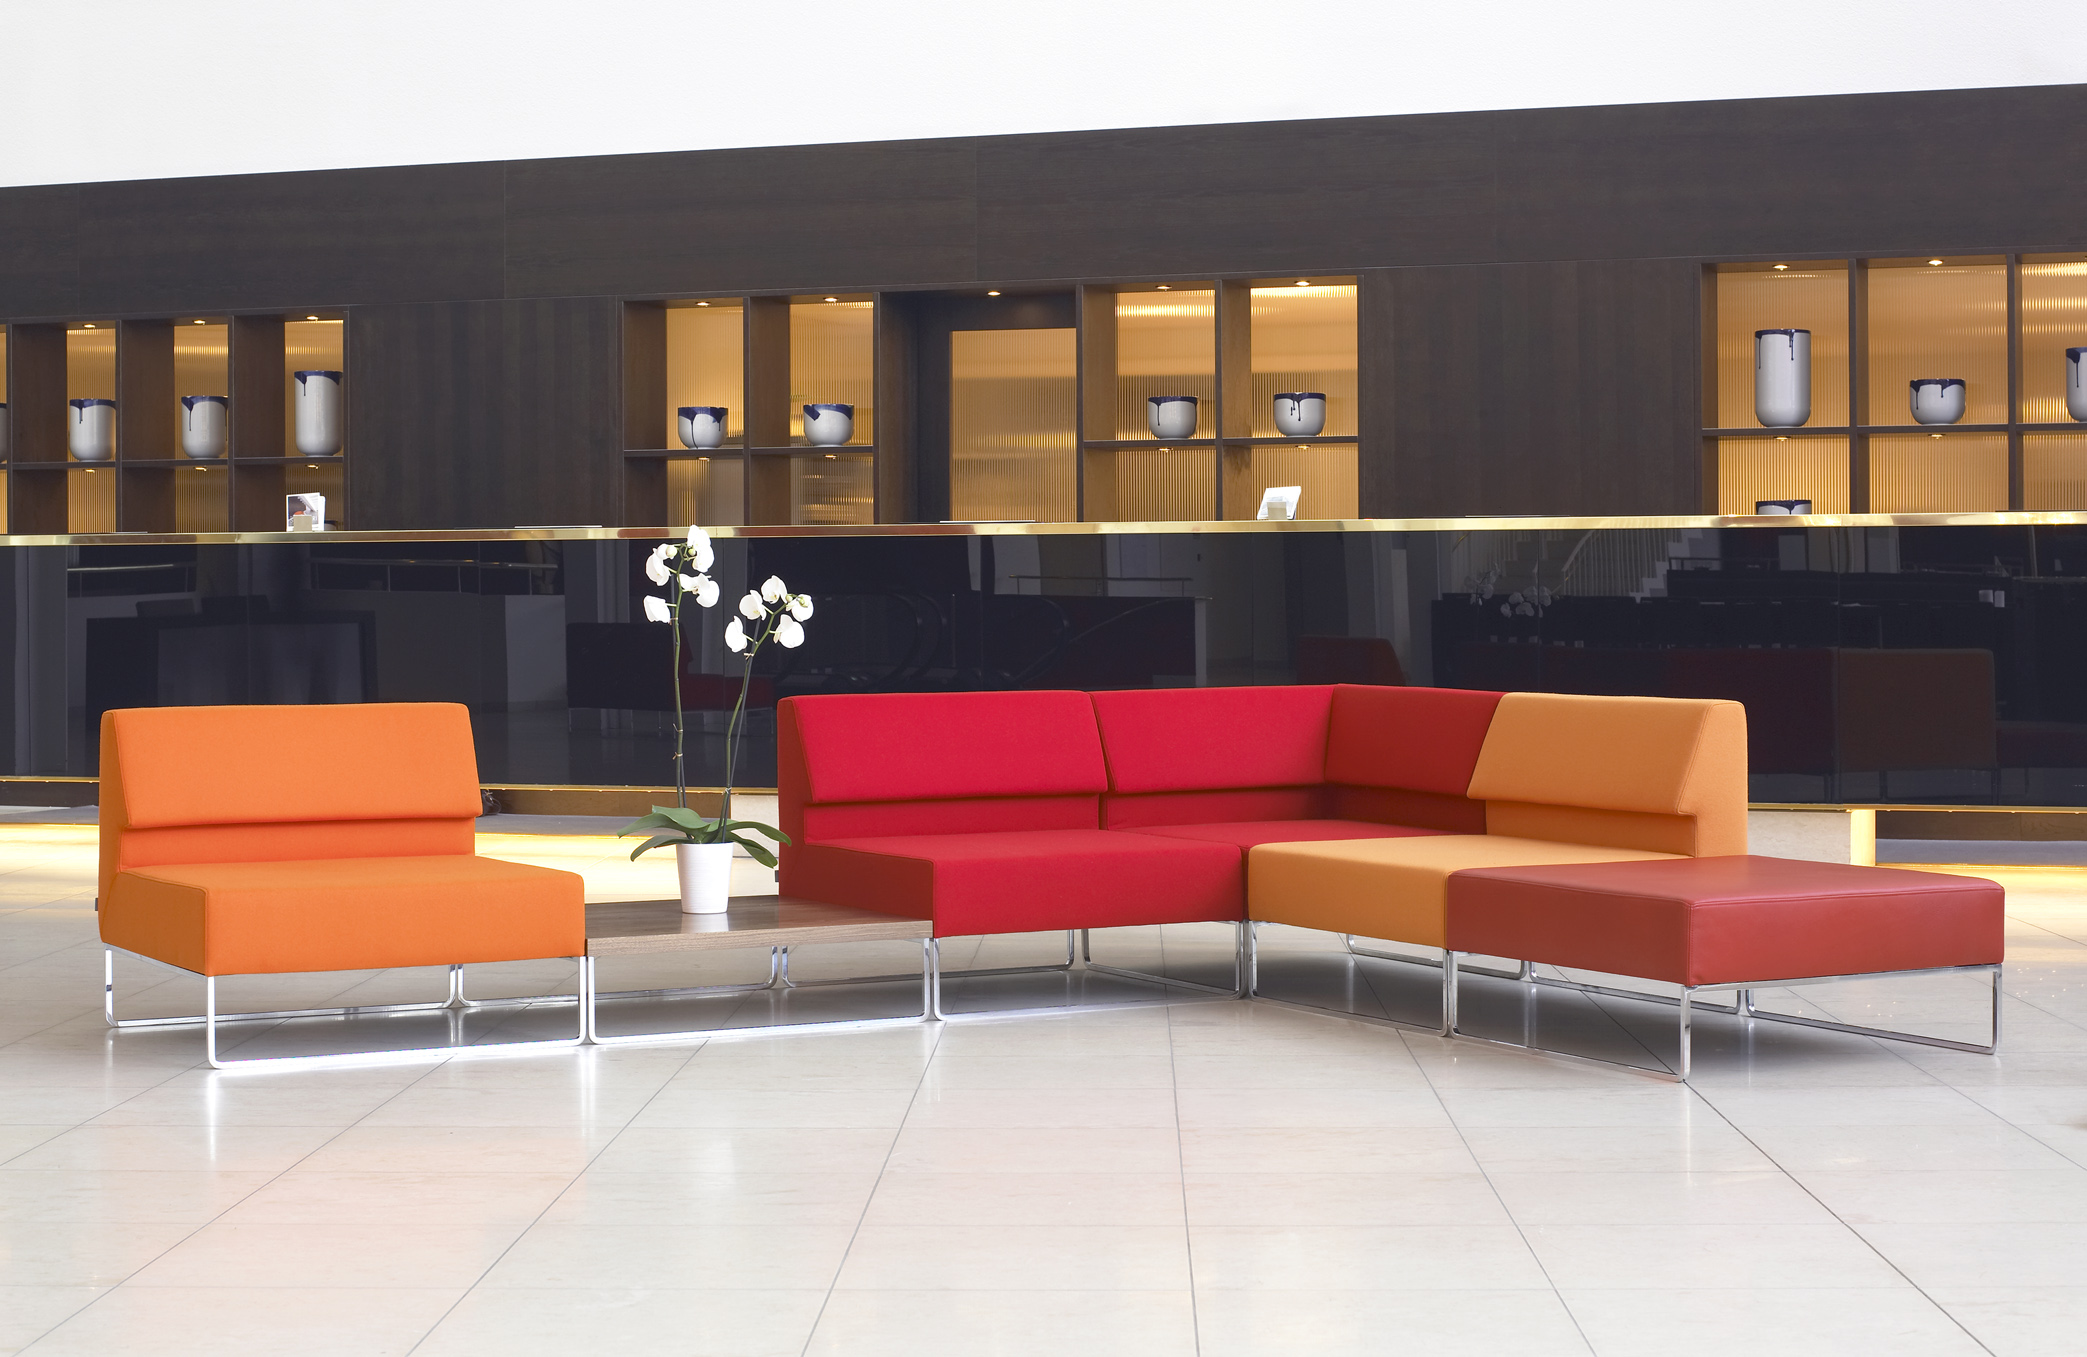 Couch +Halle. Modular couch system. Design Morten Voss